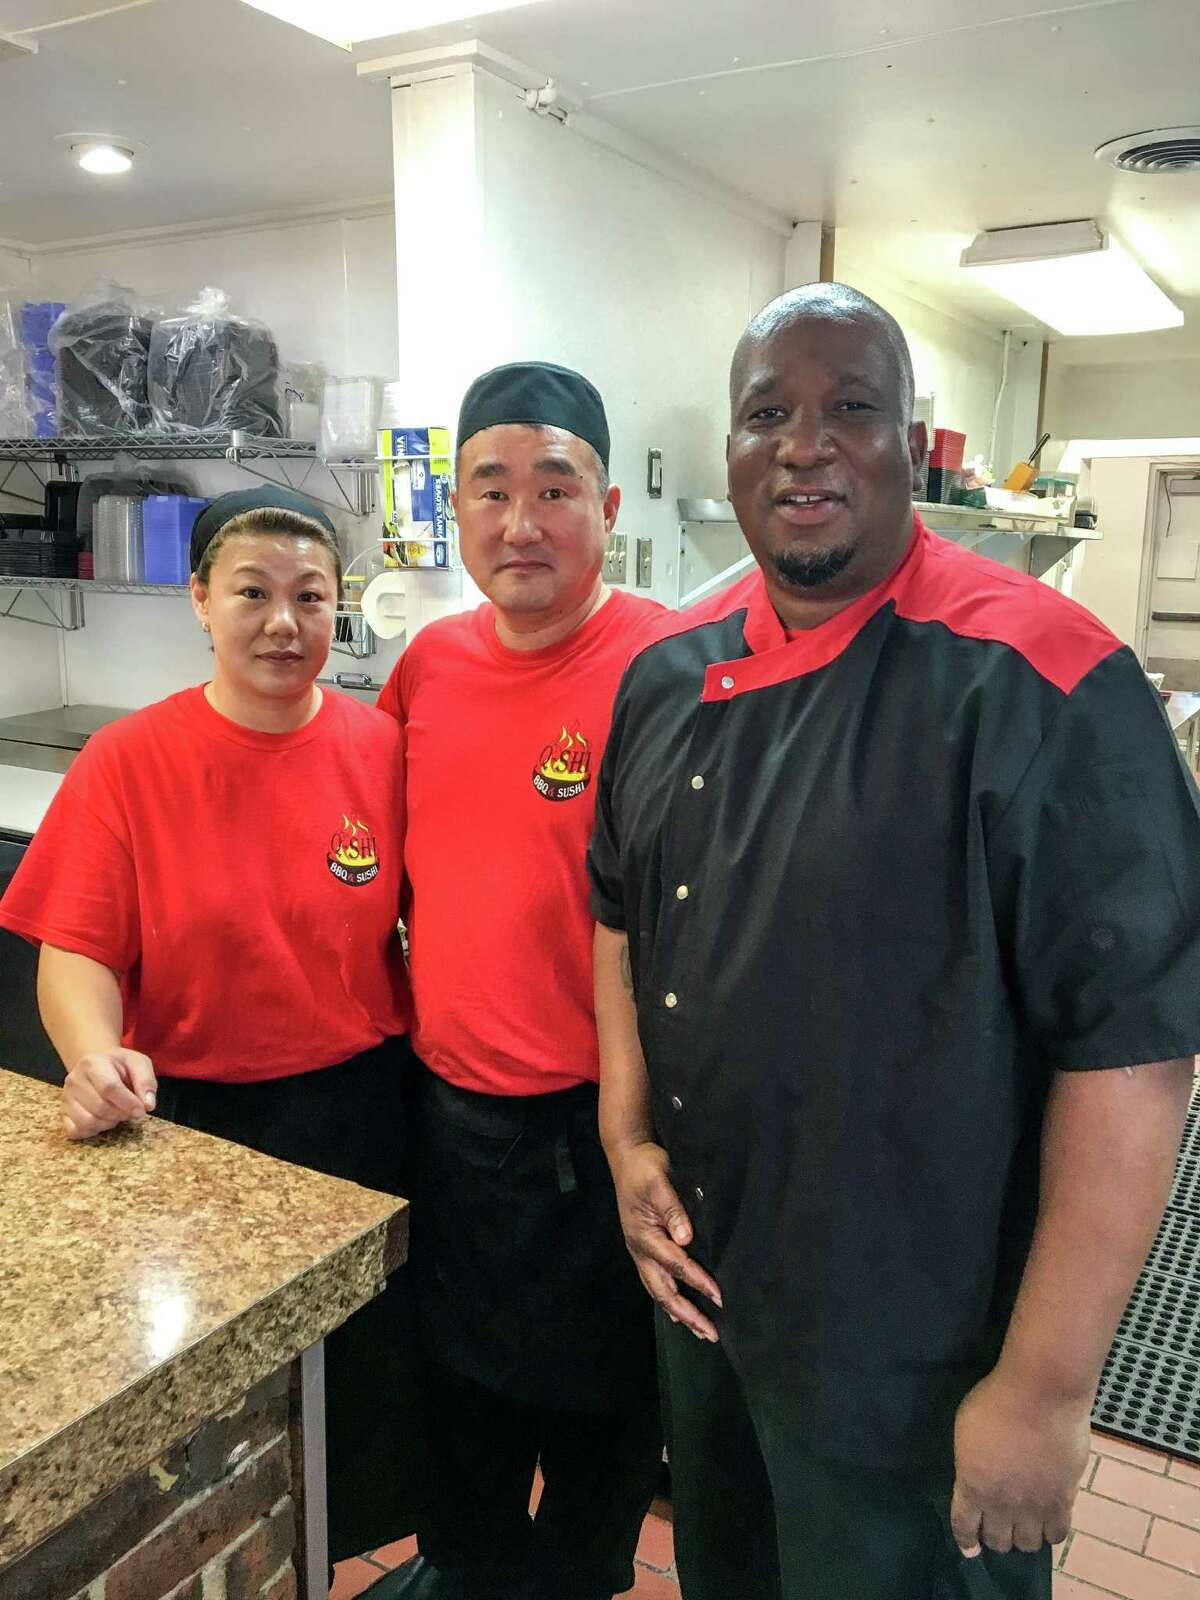 Sushi chefs Jin Oh and Jun Oh, from left, have teamed up with pitmaster Ray Aker at fusion restaurant Q-Shi.